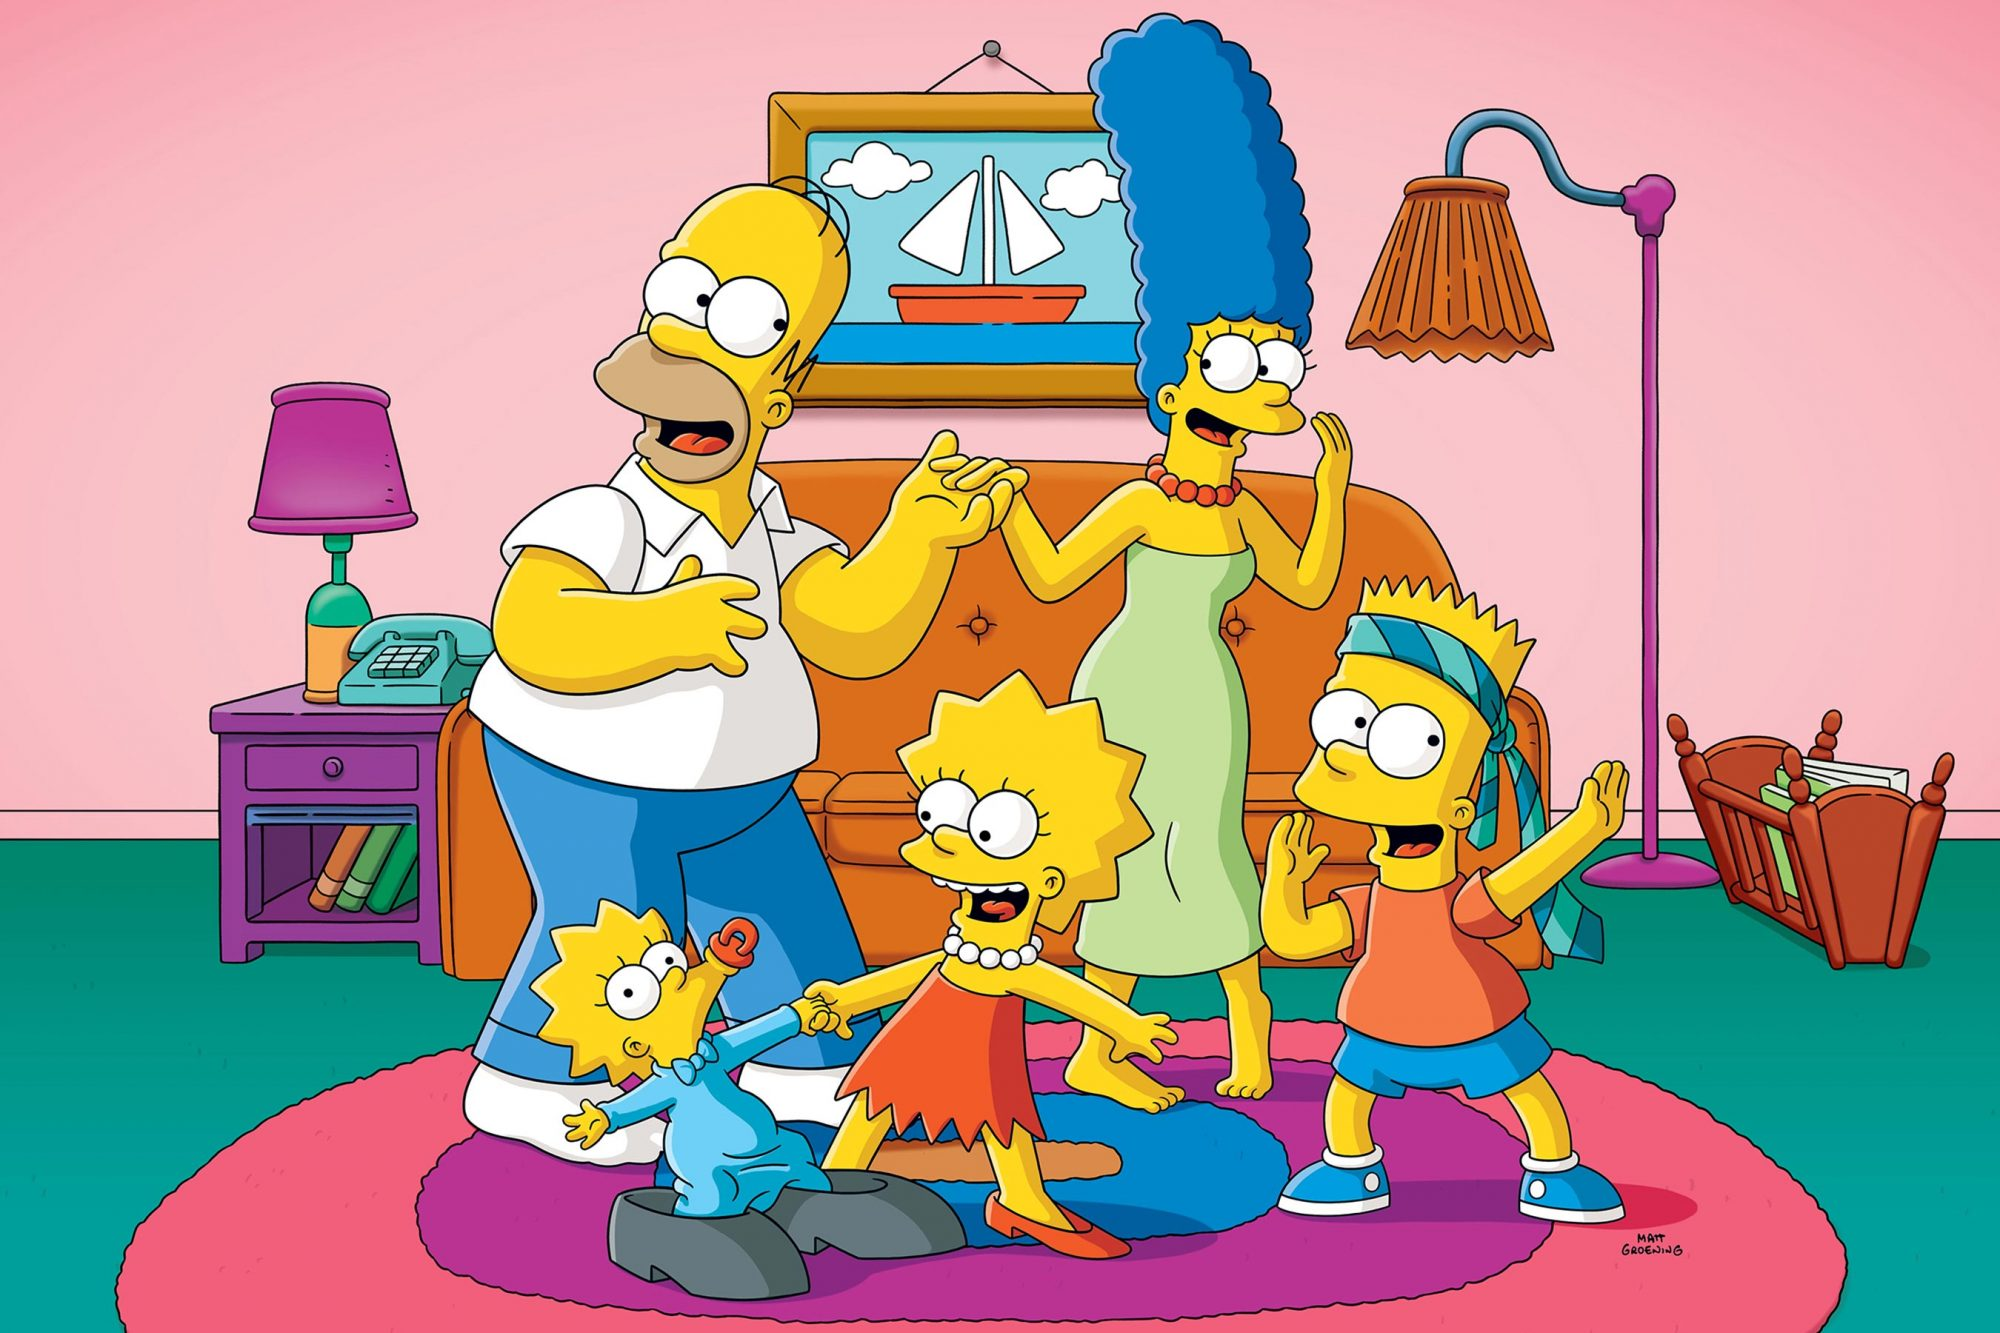 Simpsons_FamilyDressDance_2019_R4_hires2